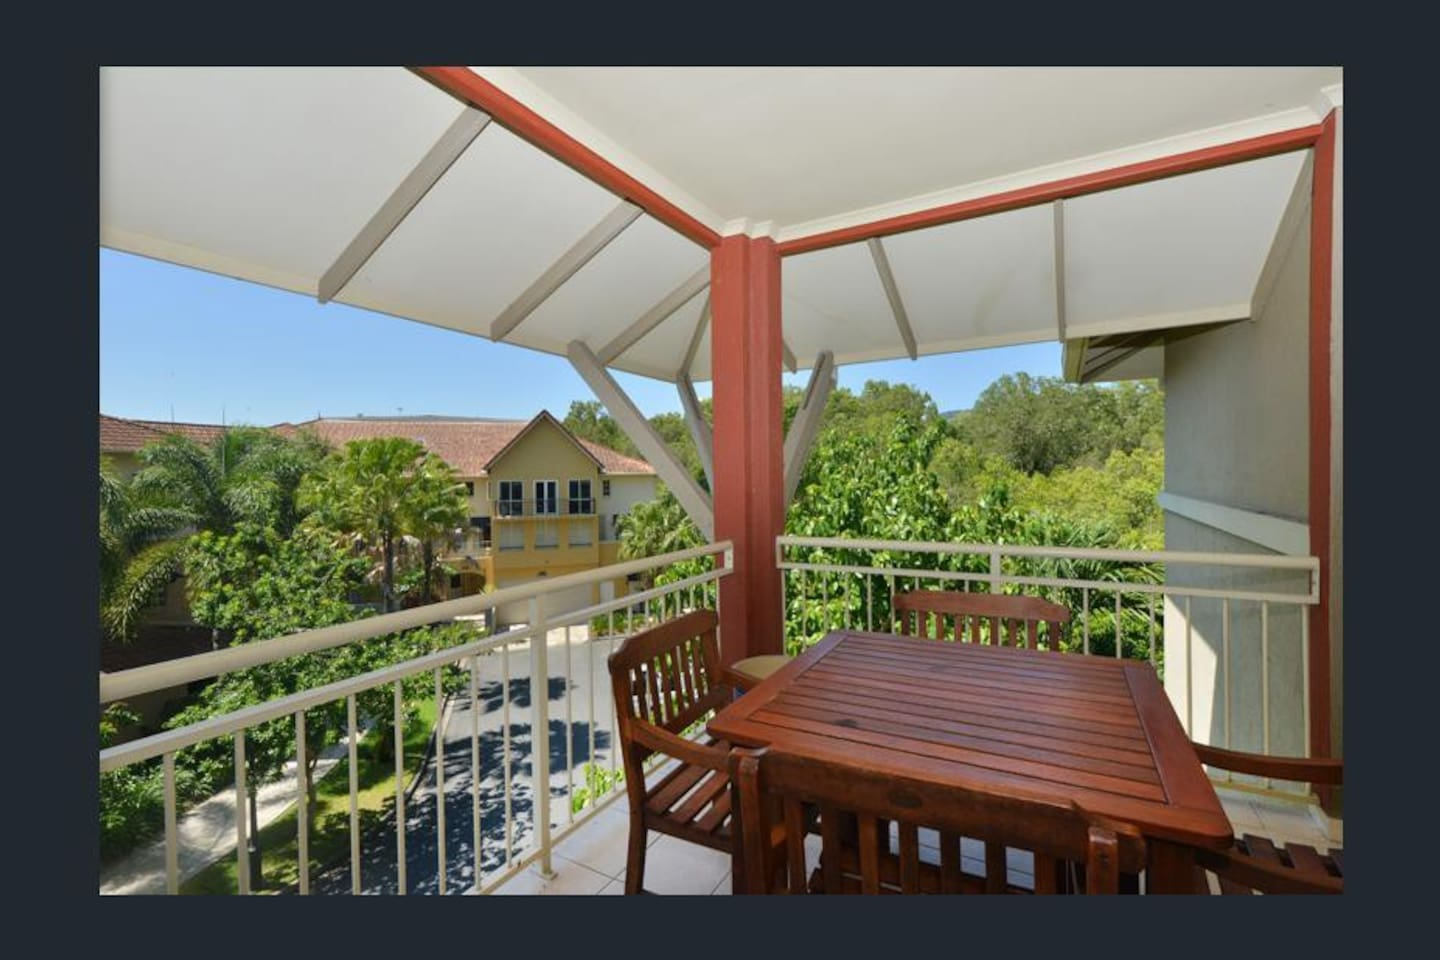 Enjoy a wine overlooking the greenery from the deck